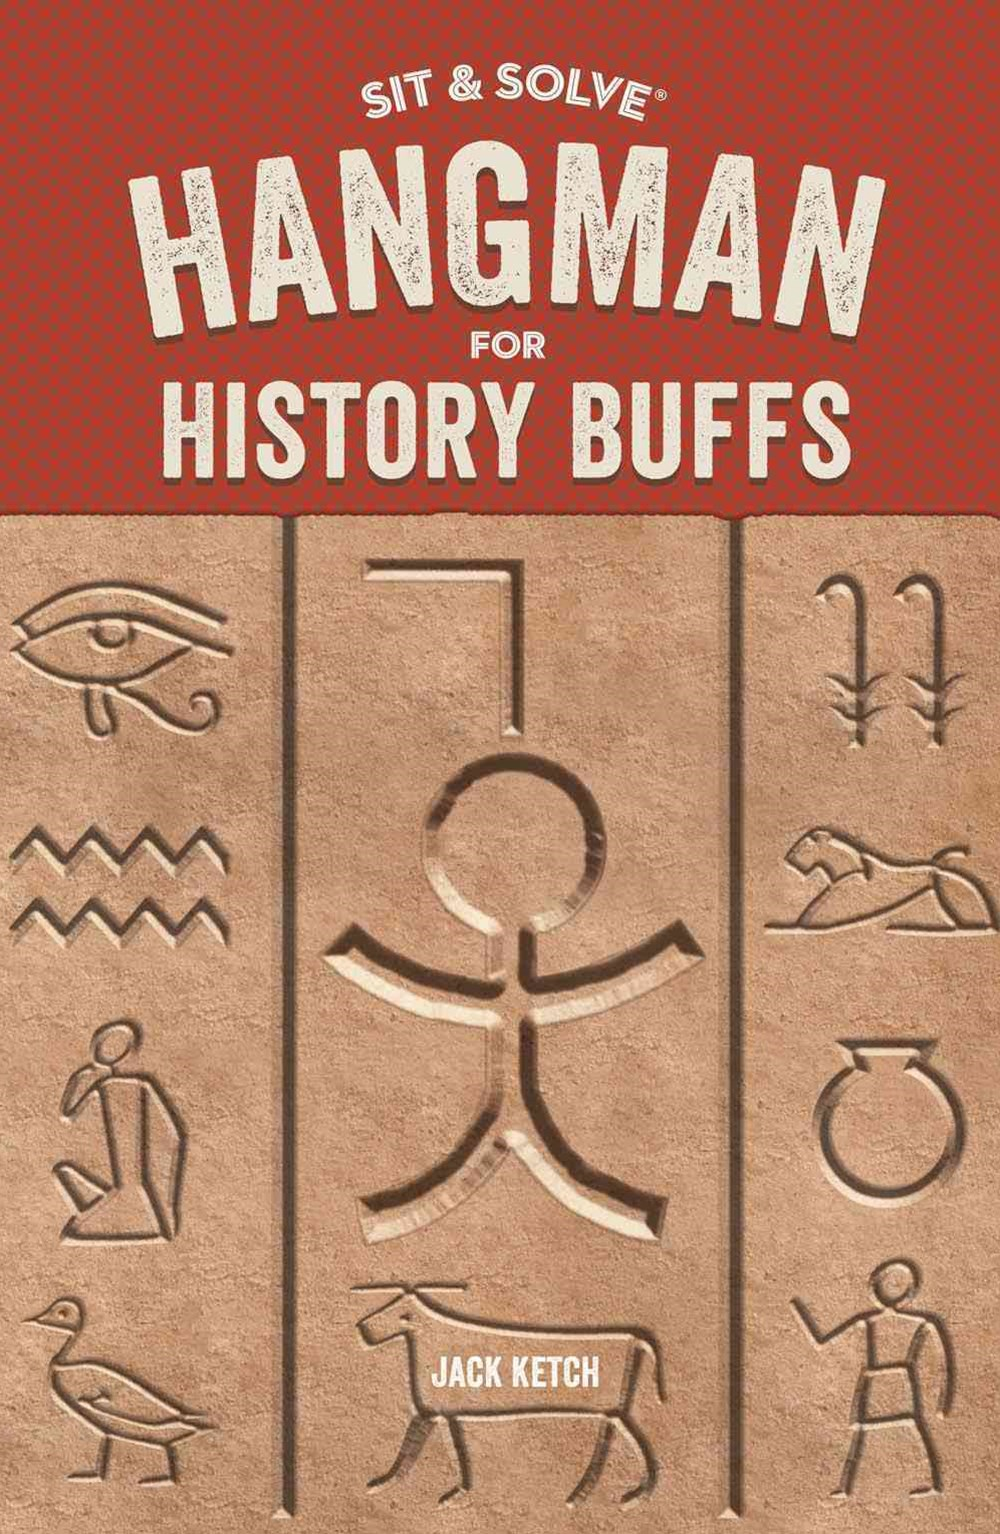 Sit & Solve® Hangman for History Buffs